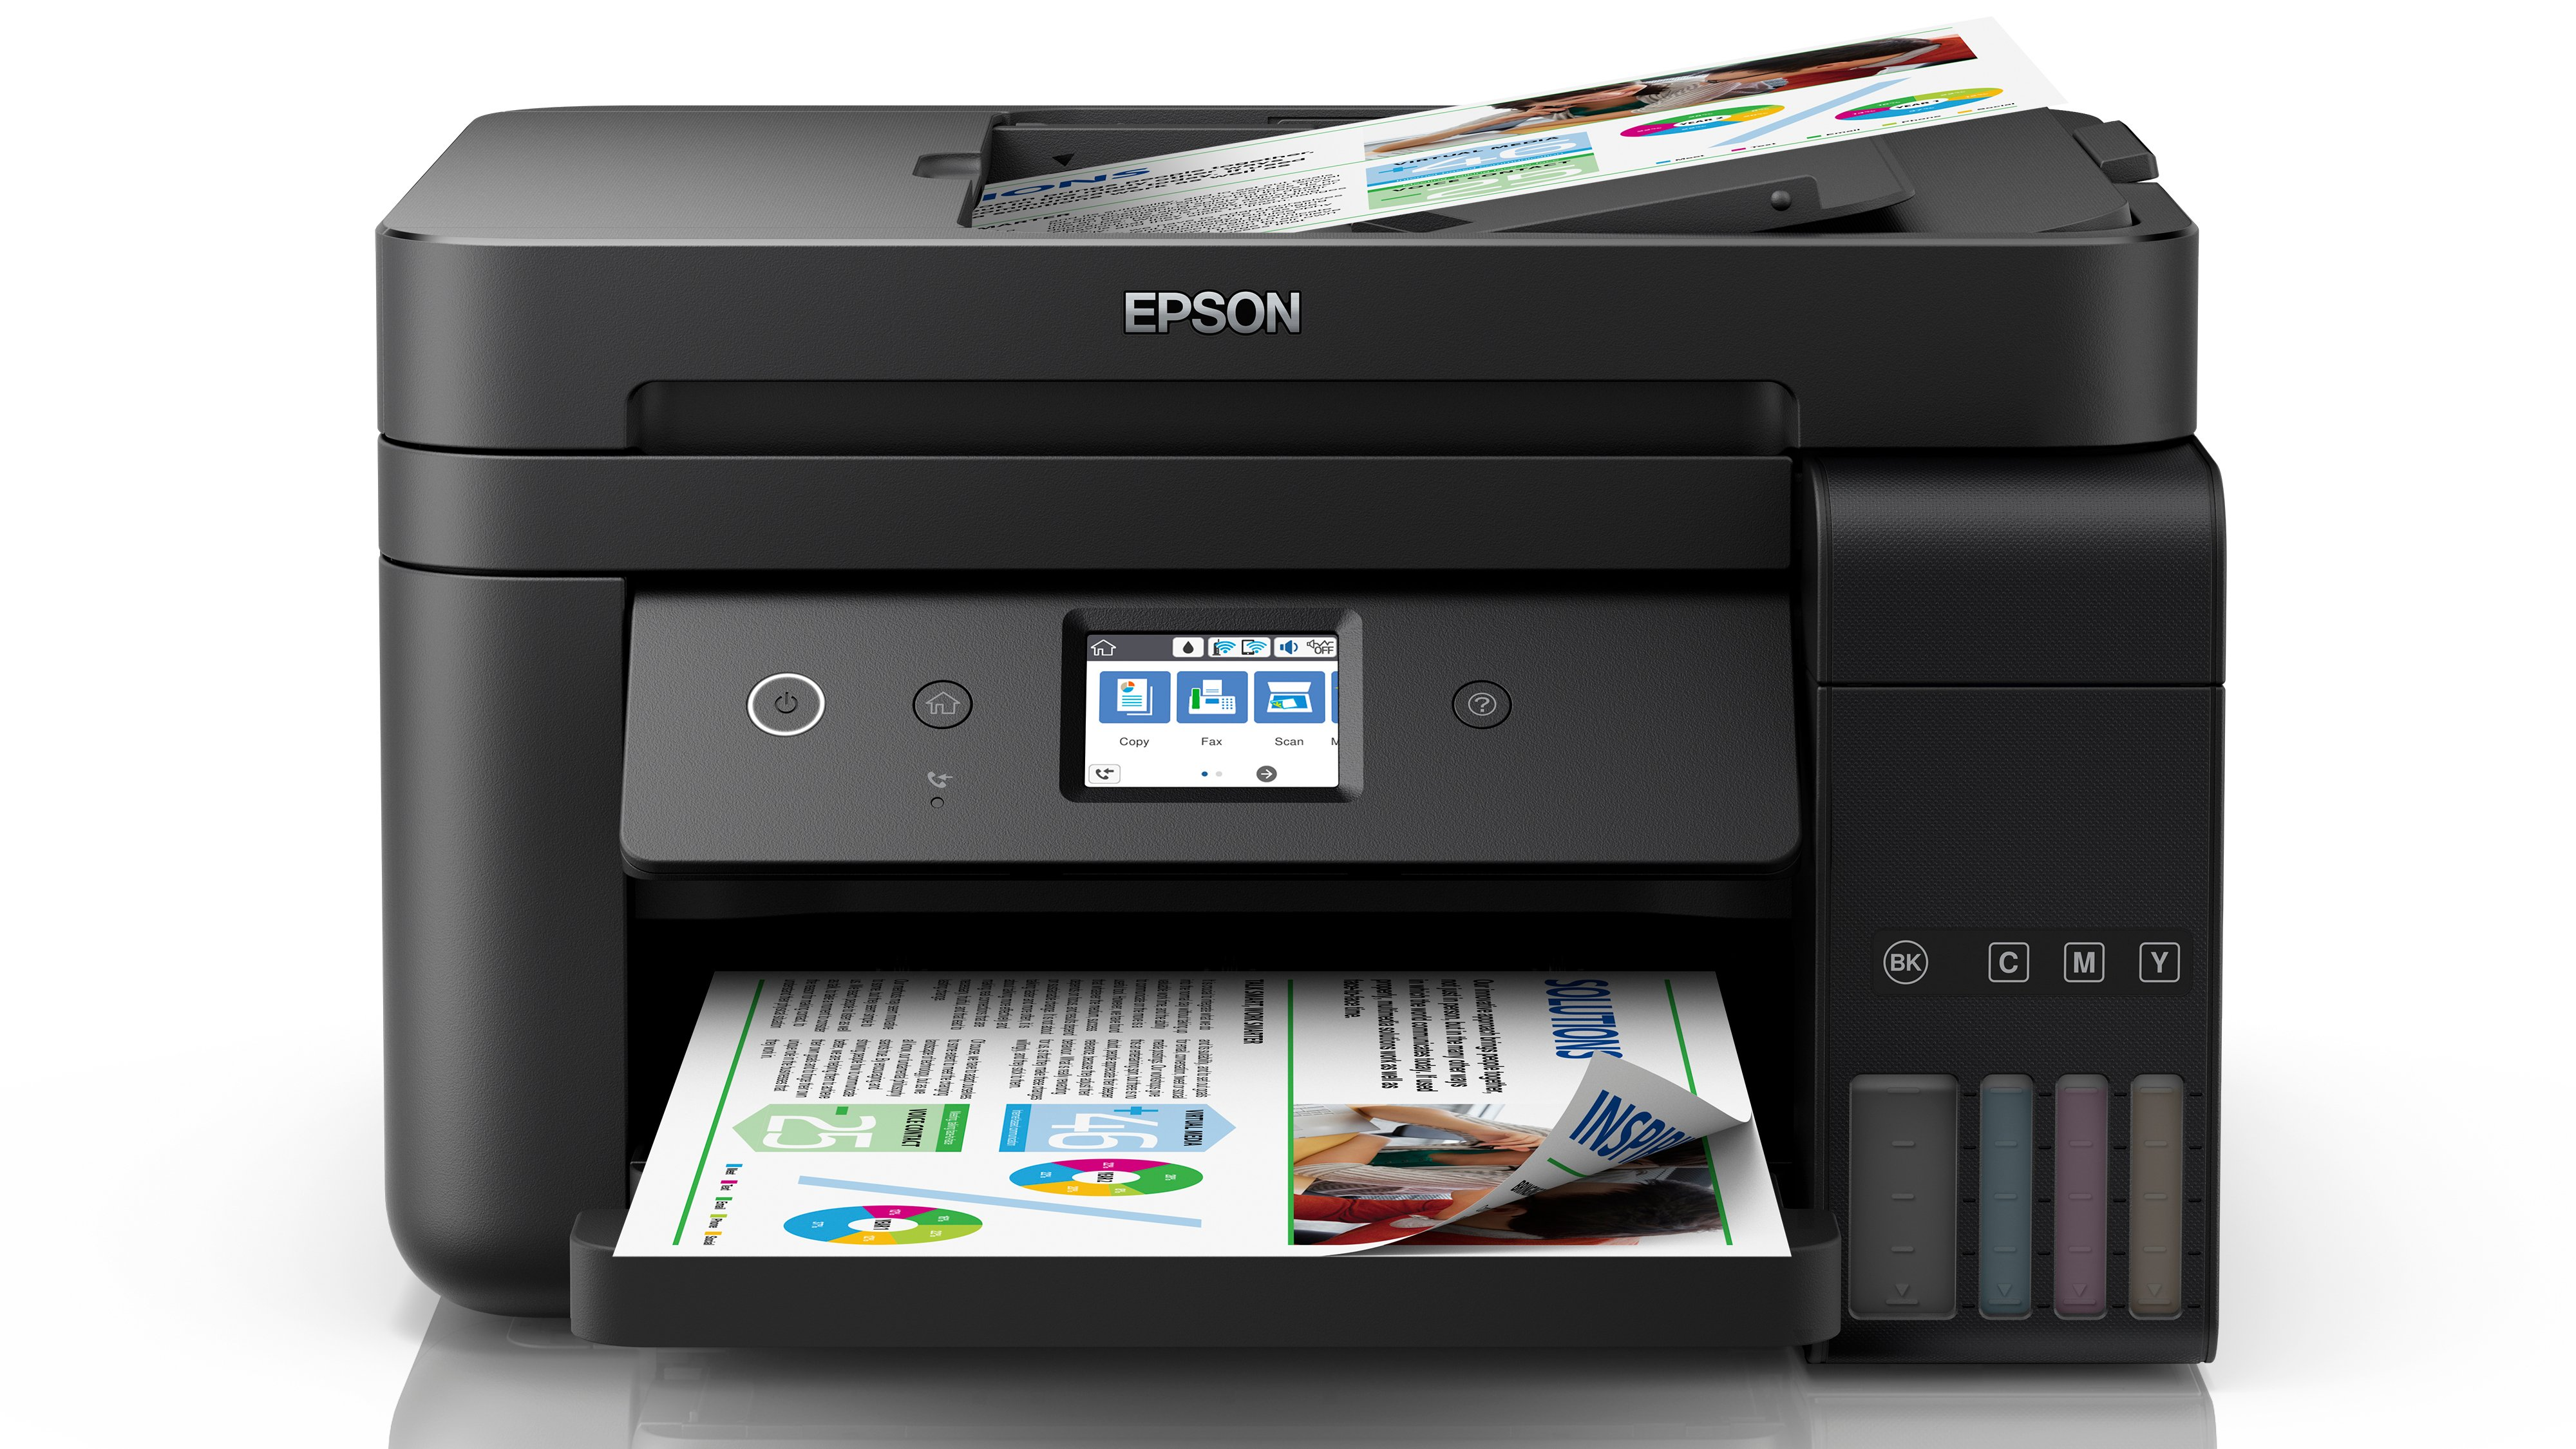 Epson EcoTank ET-4750 review: A well-equipped, decent EcoTank MFP